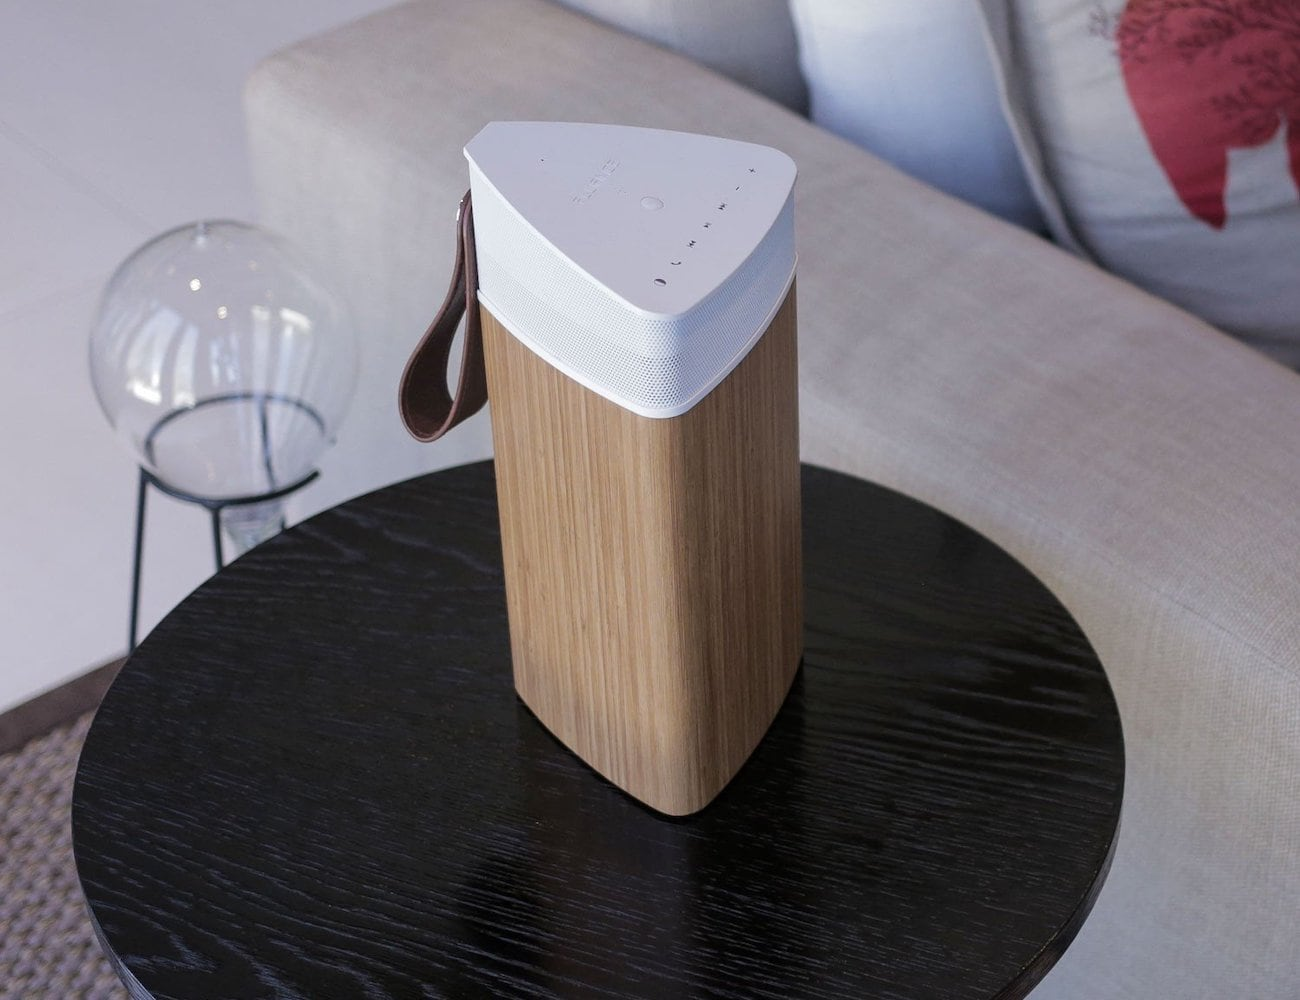 Fluance Fi20 Portable 360 Degree Speaker delivers immersive sound